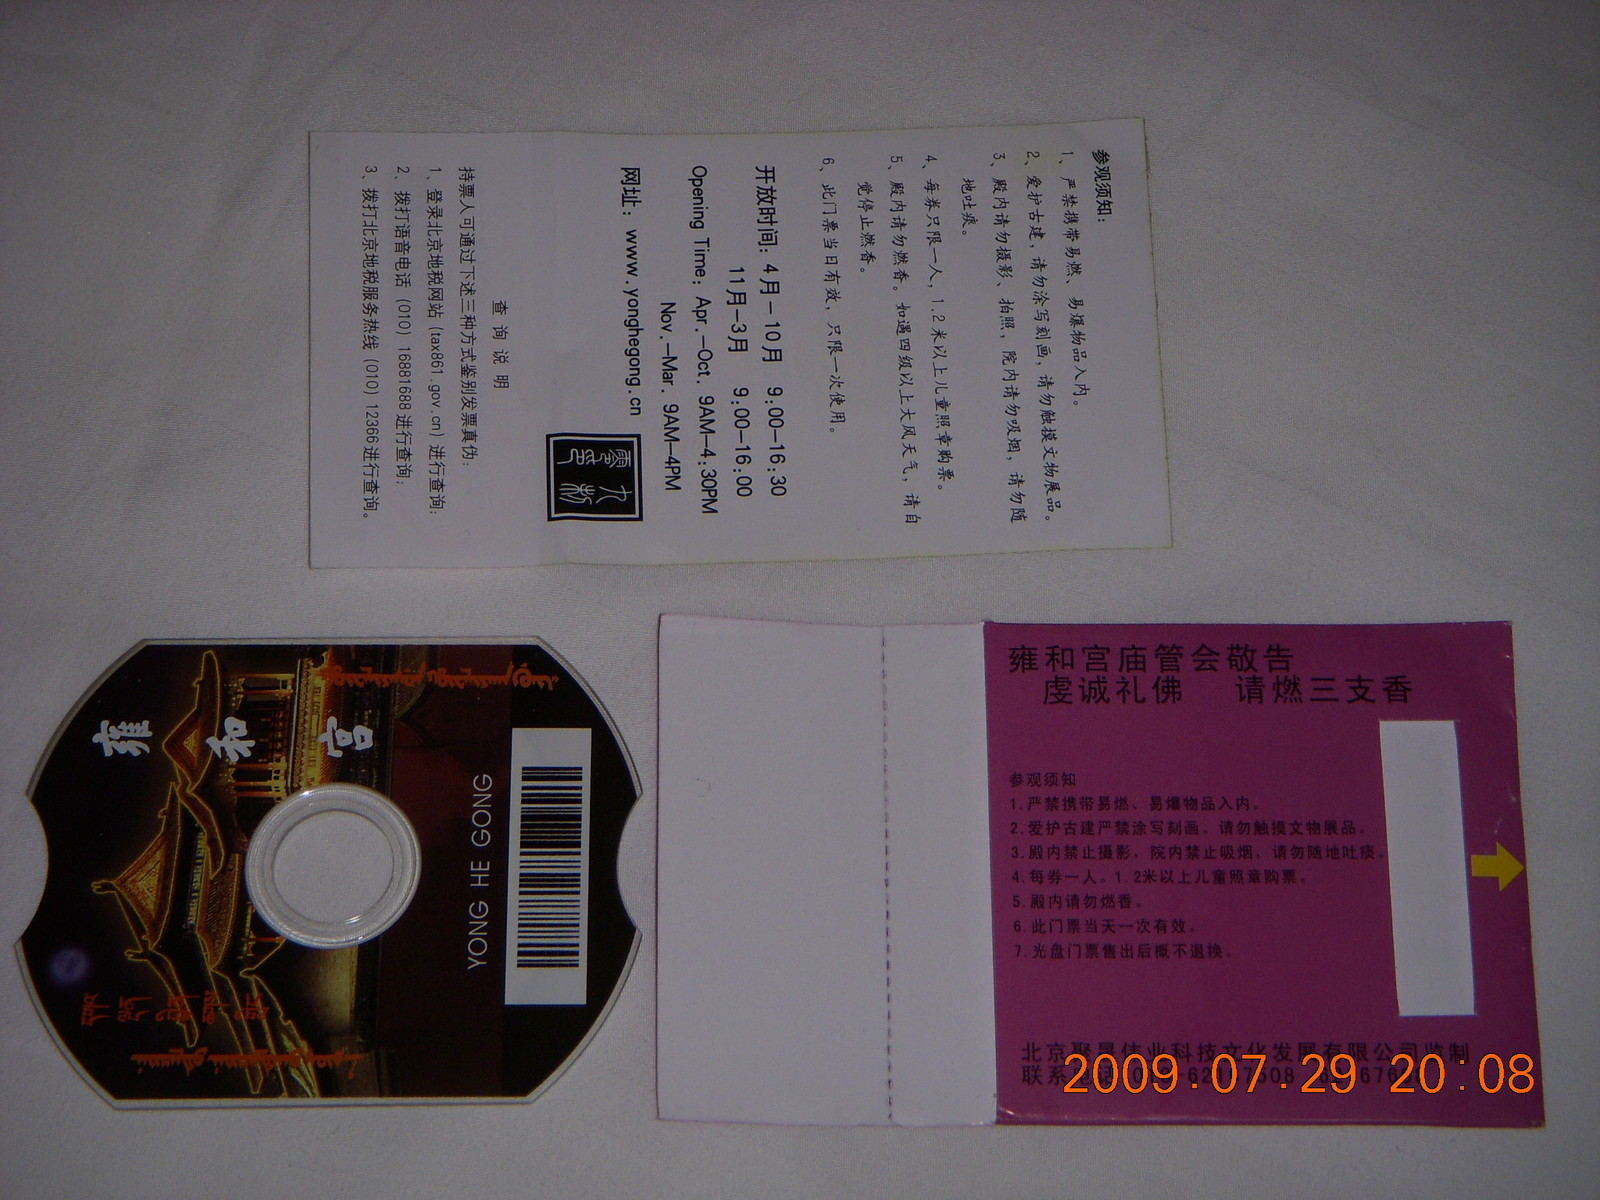 China eclipse - Beijing - Lama temple ticket and mini-CD back